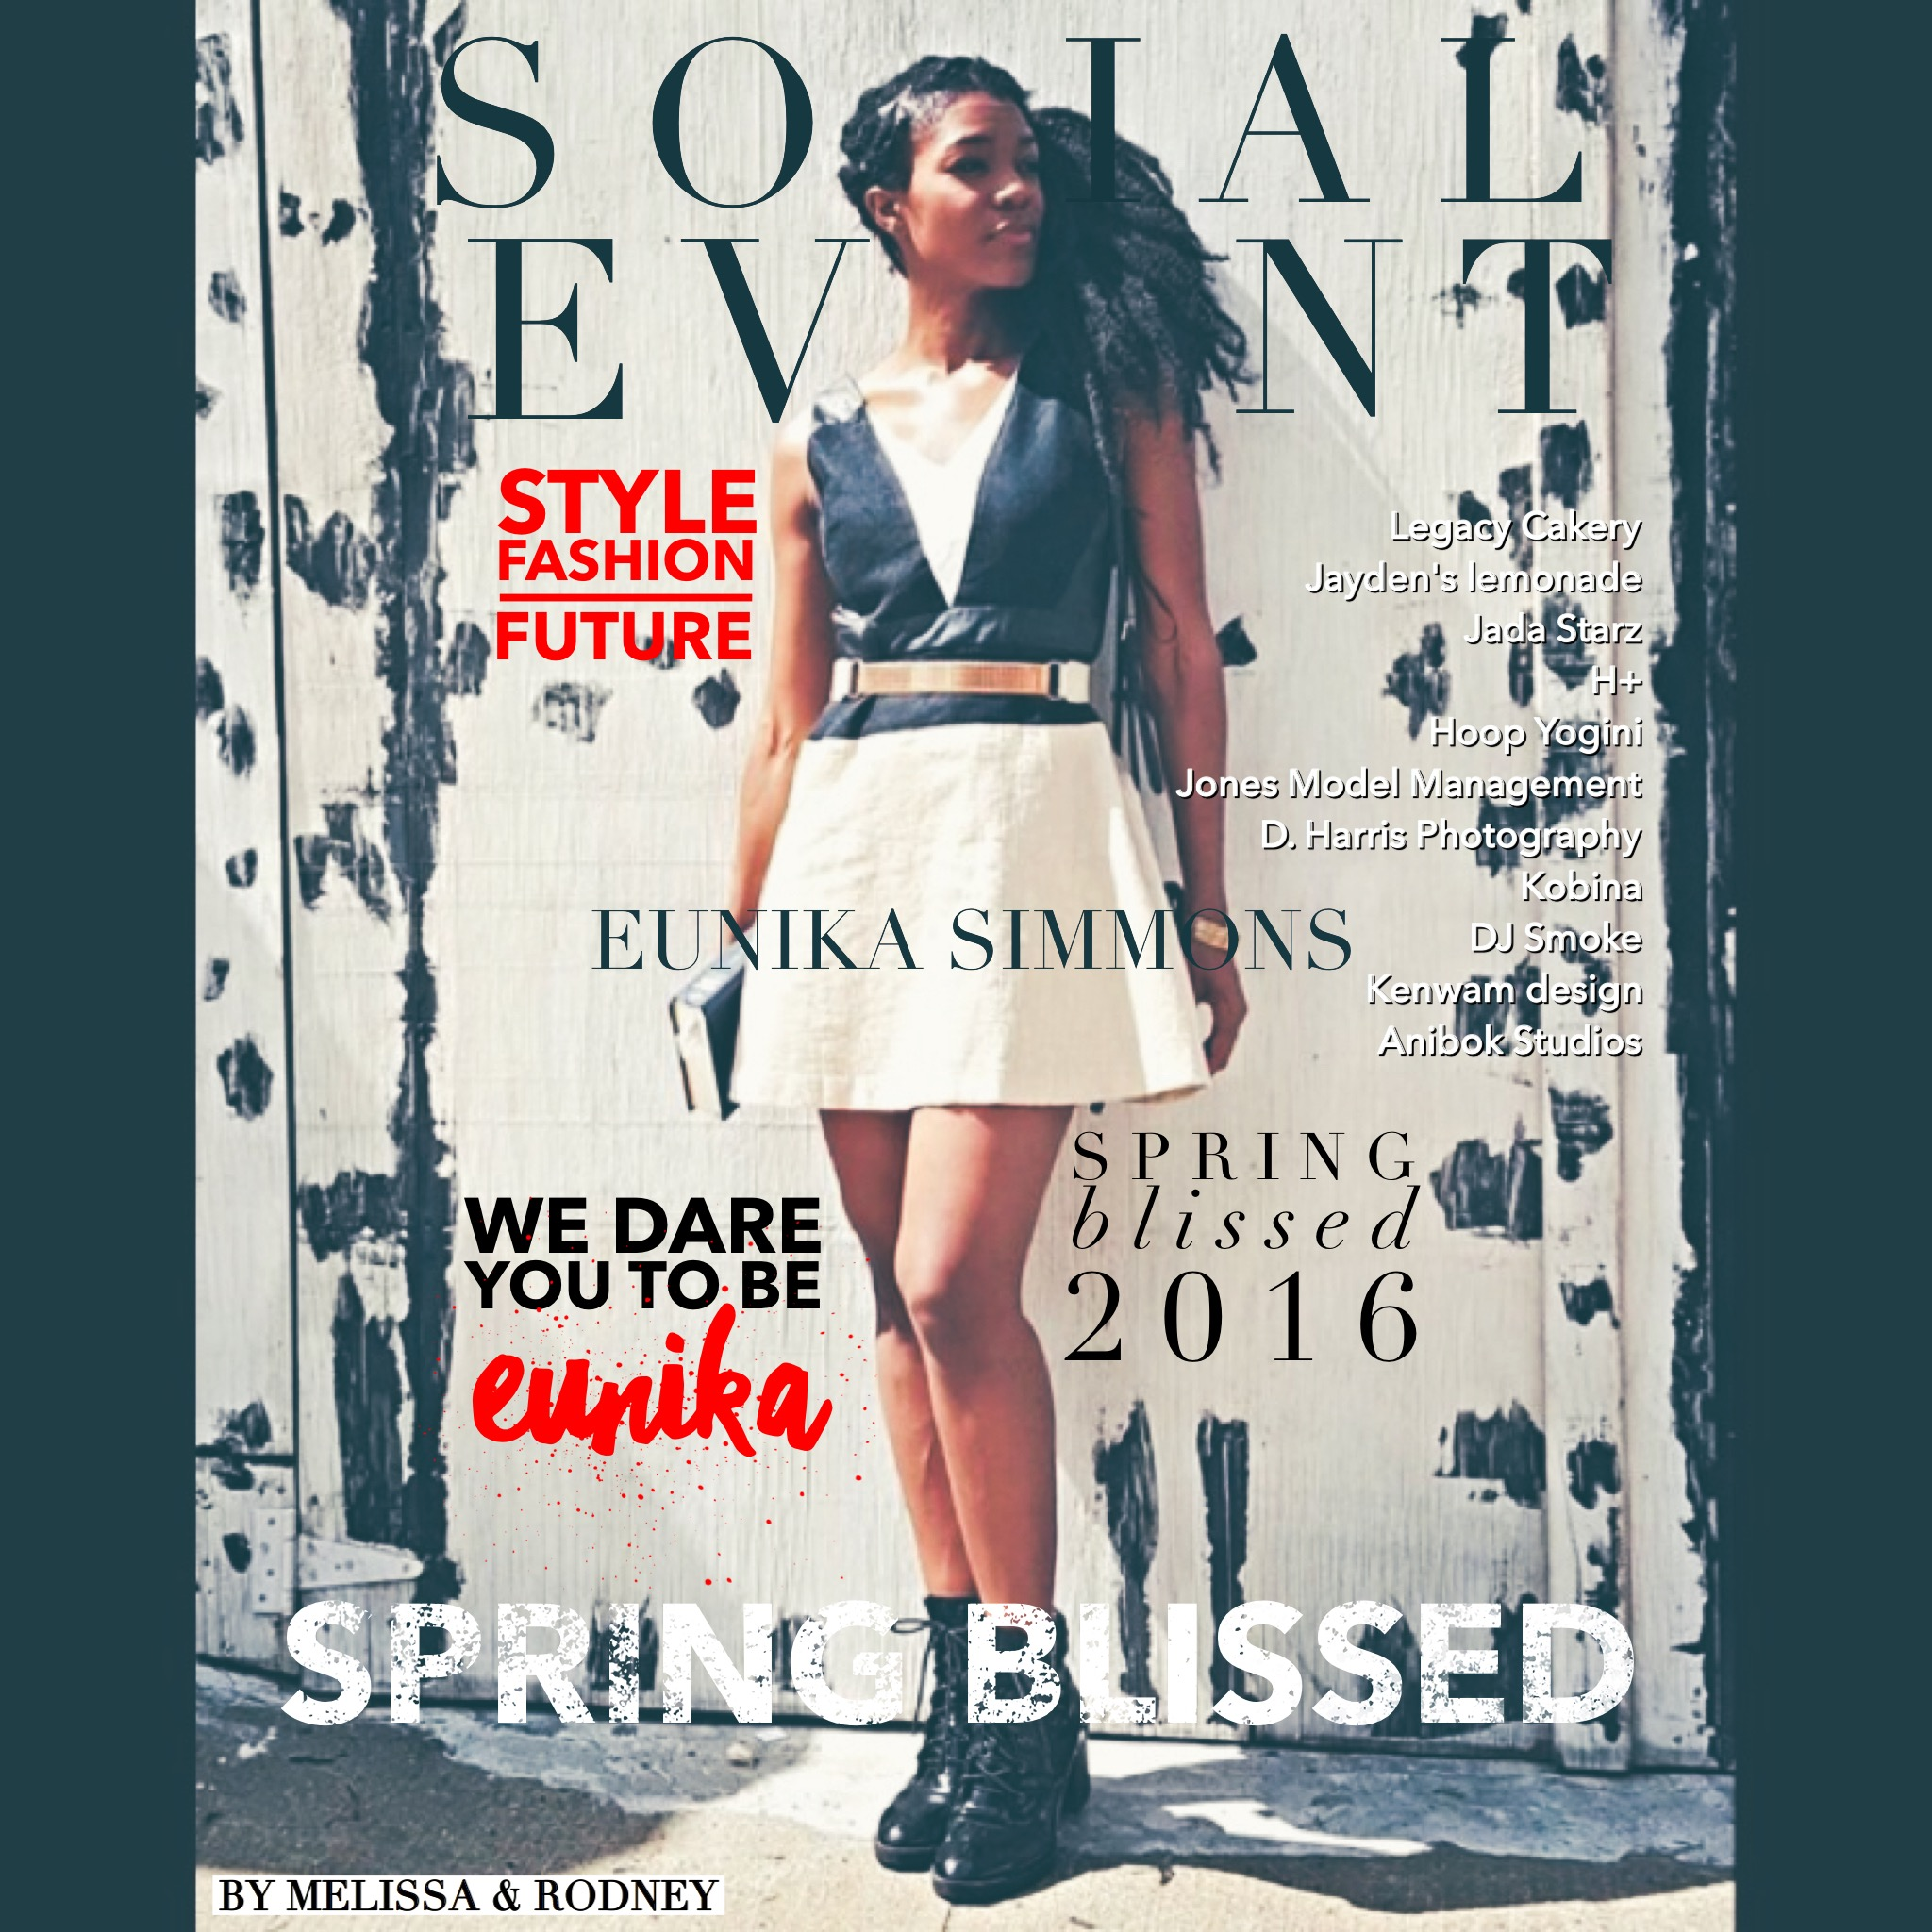 Social Event Spring Blissed 2016